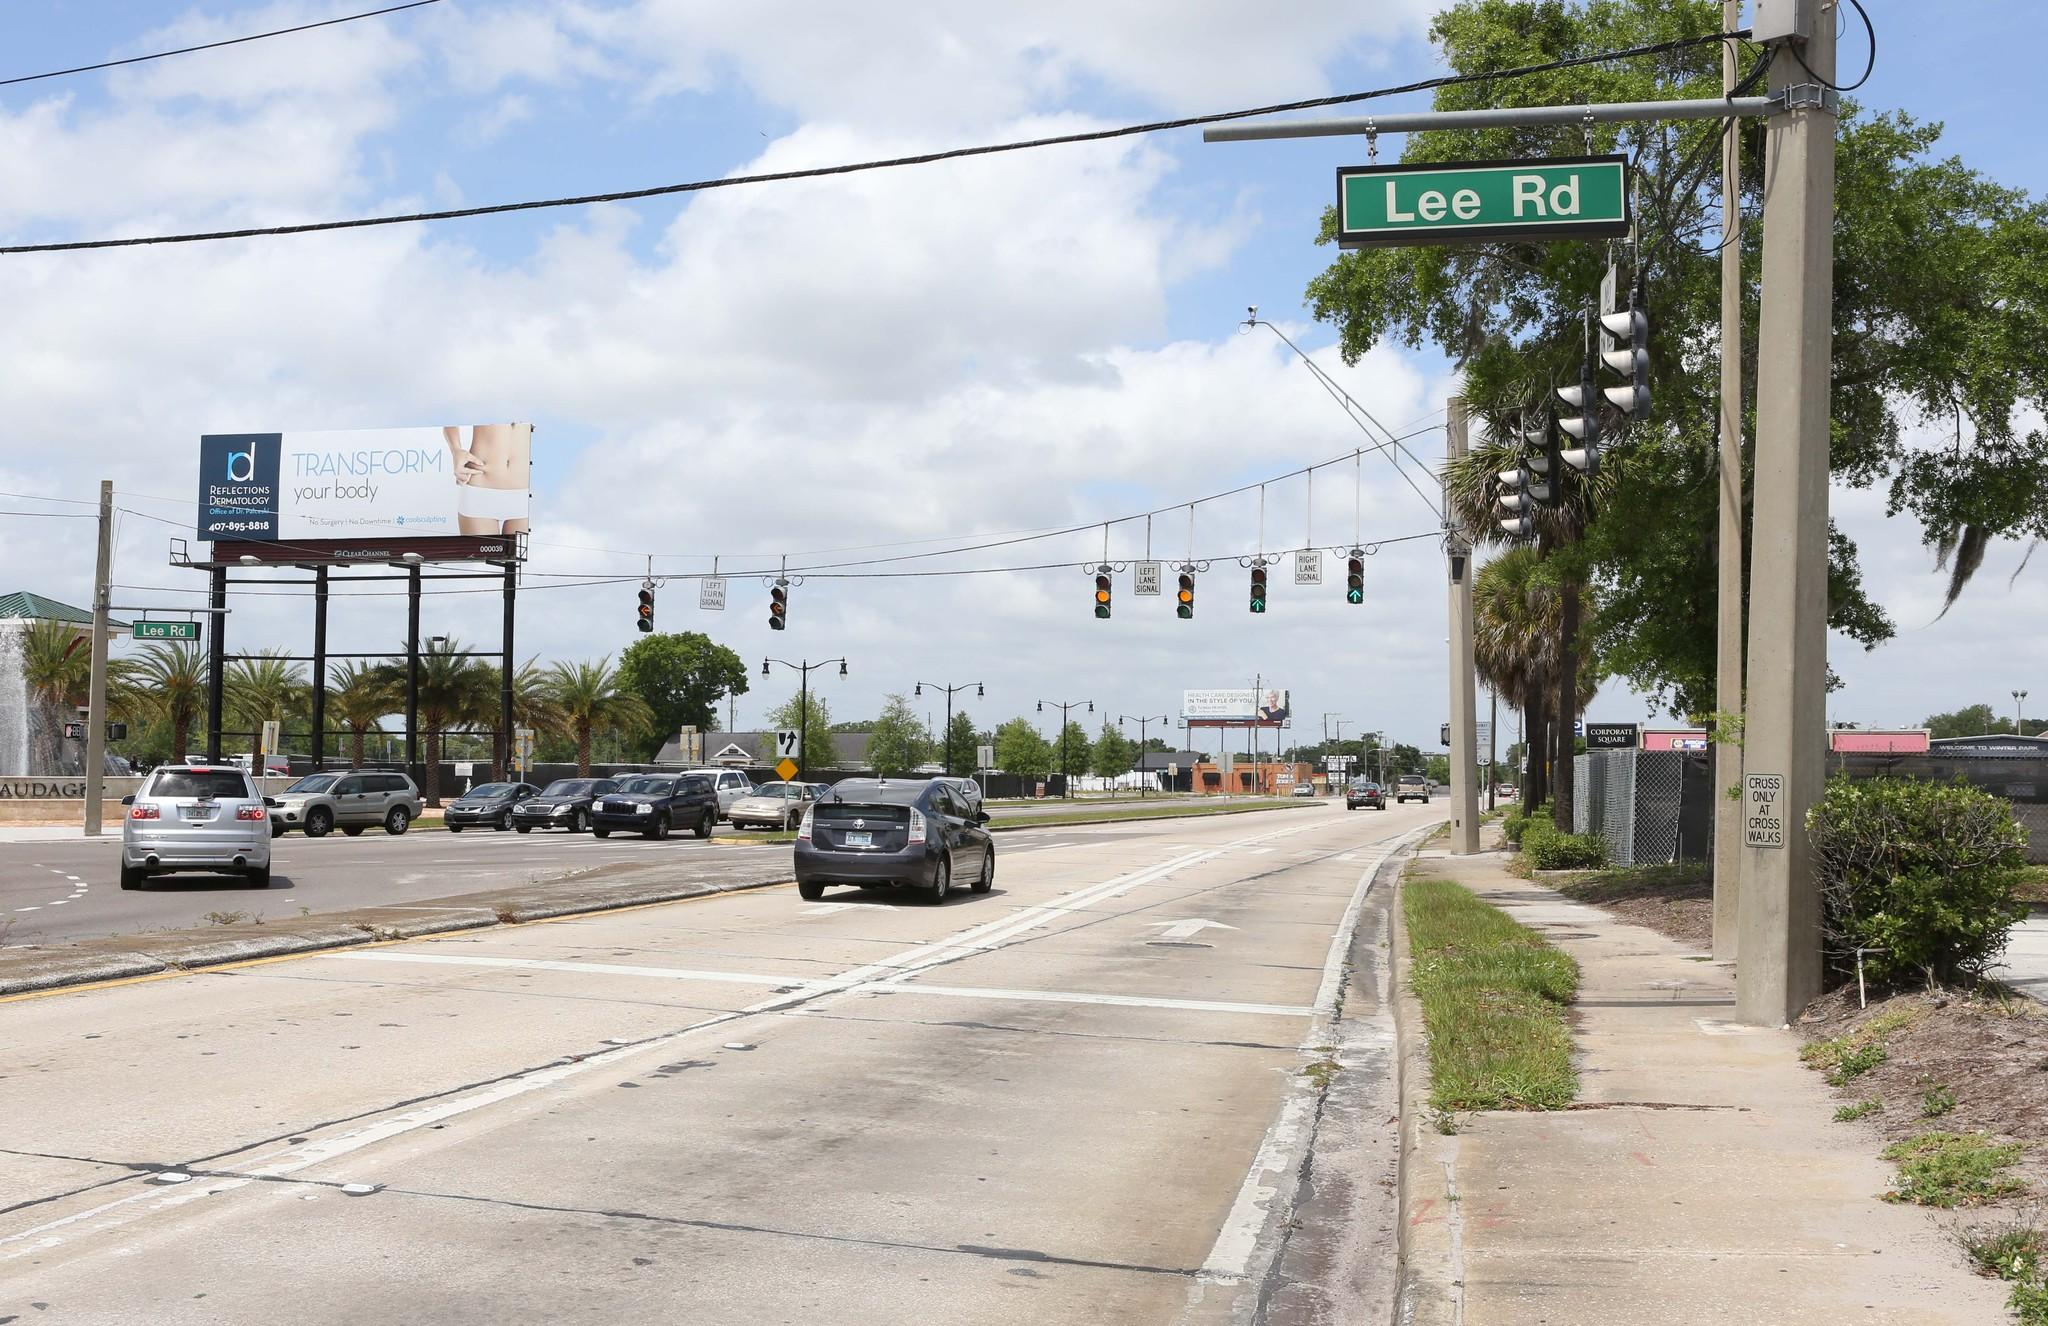 Winter Park and the Florida Department of Transportation are considering an extension of Lee Road, which now dead-ends at U.S. 17-92.